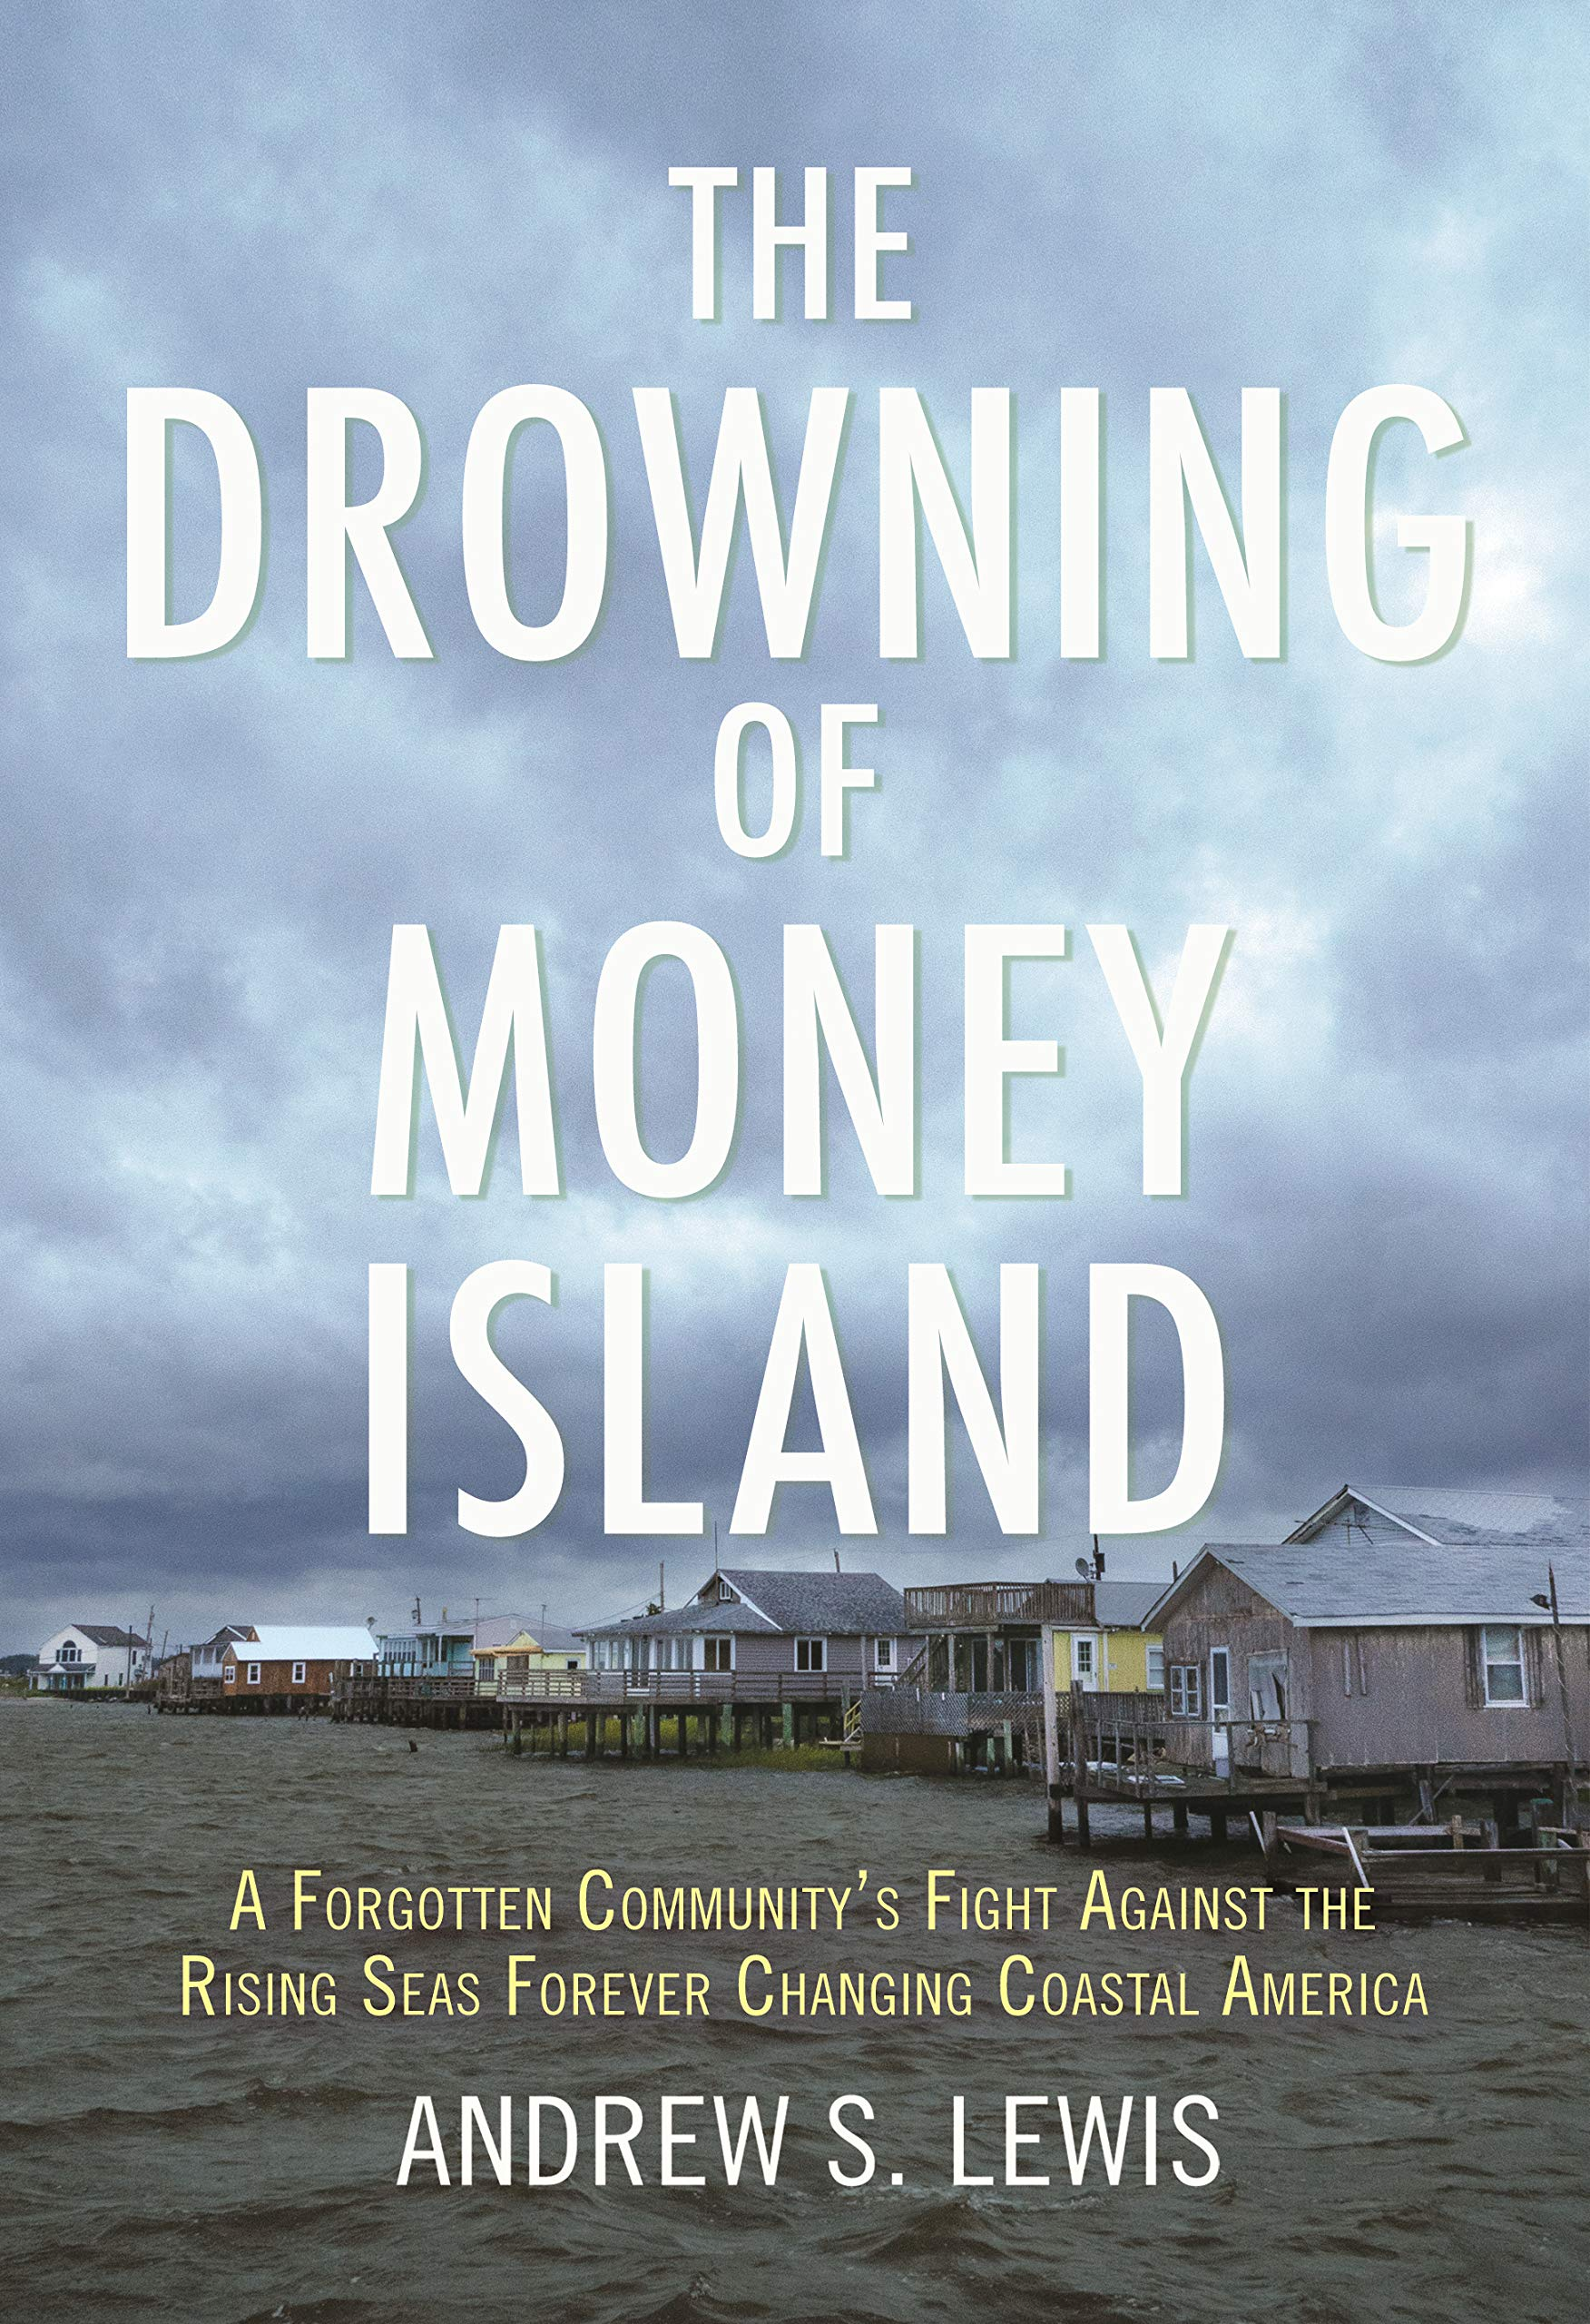 Image OfThe Drowning Of Money Island: A Forgotten Community's Fight Against The Rising Seas Forever Changing Coastal America